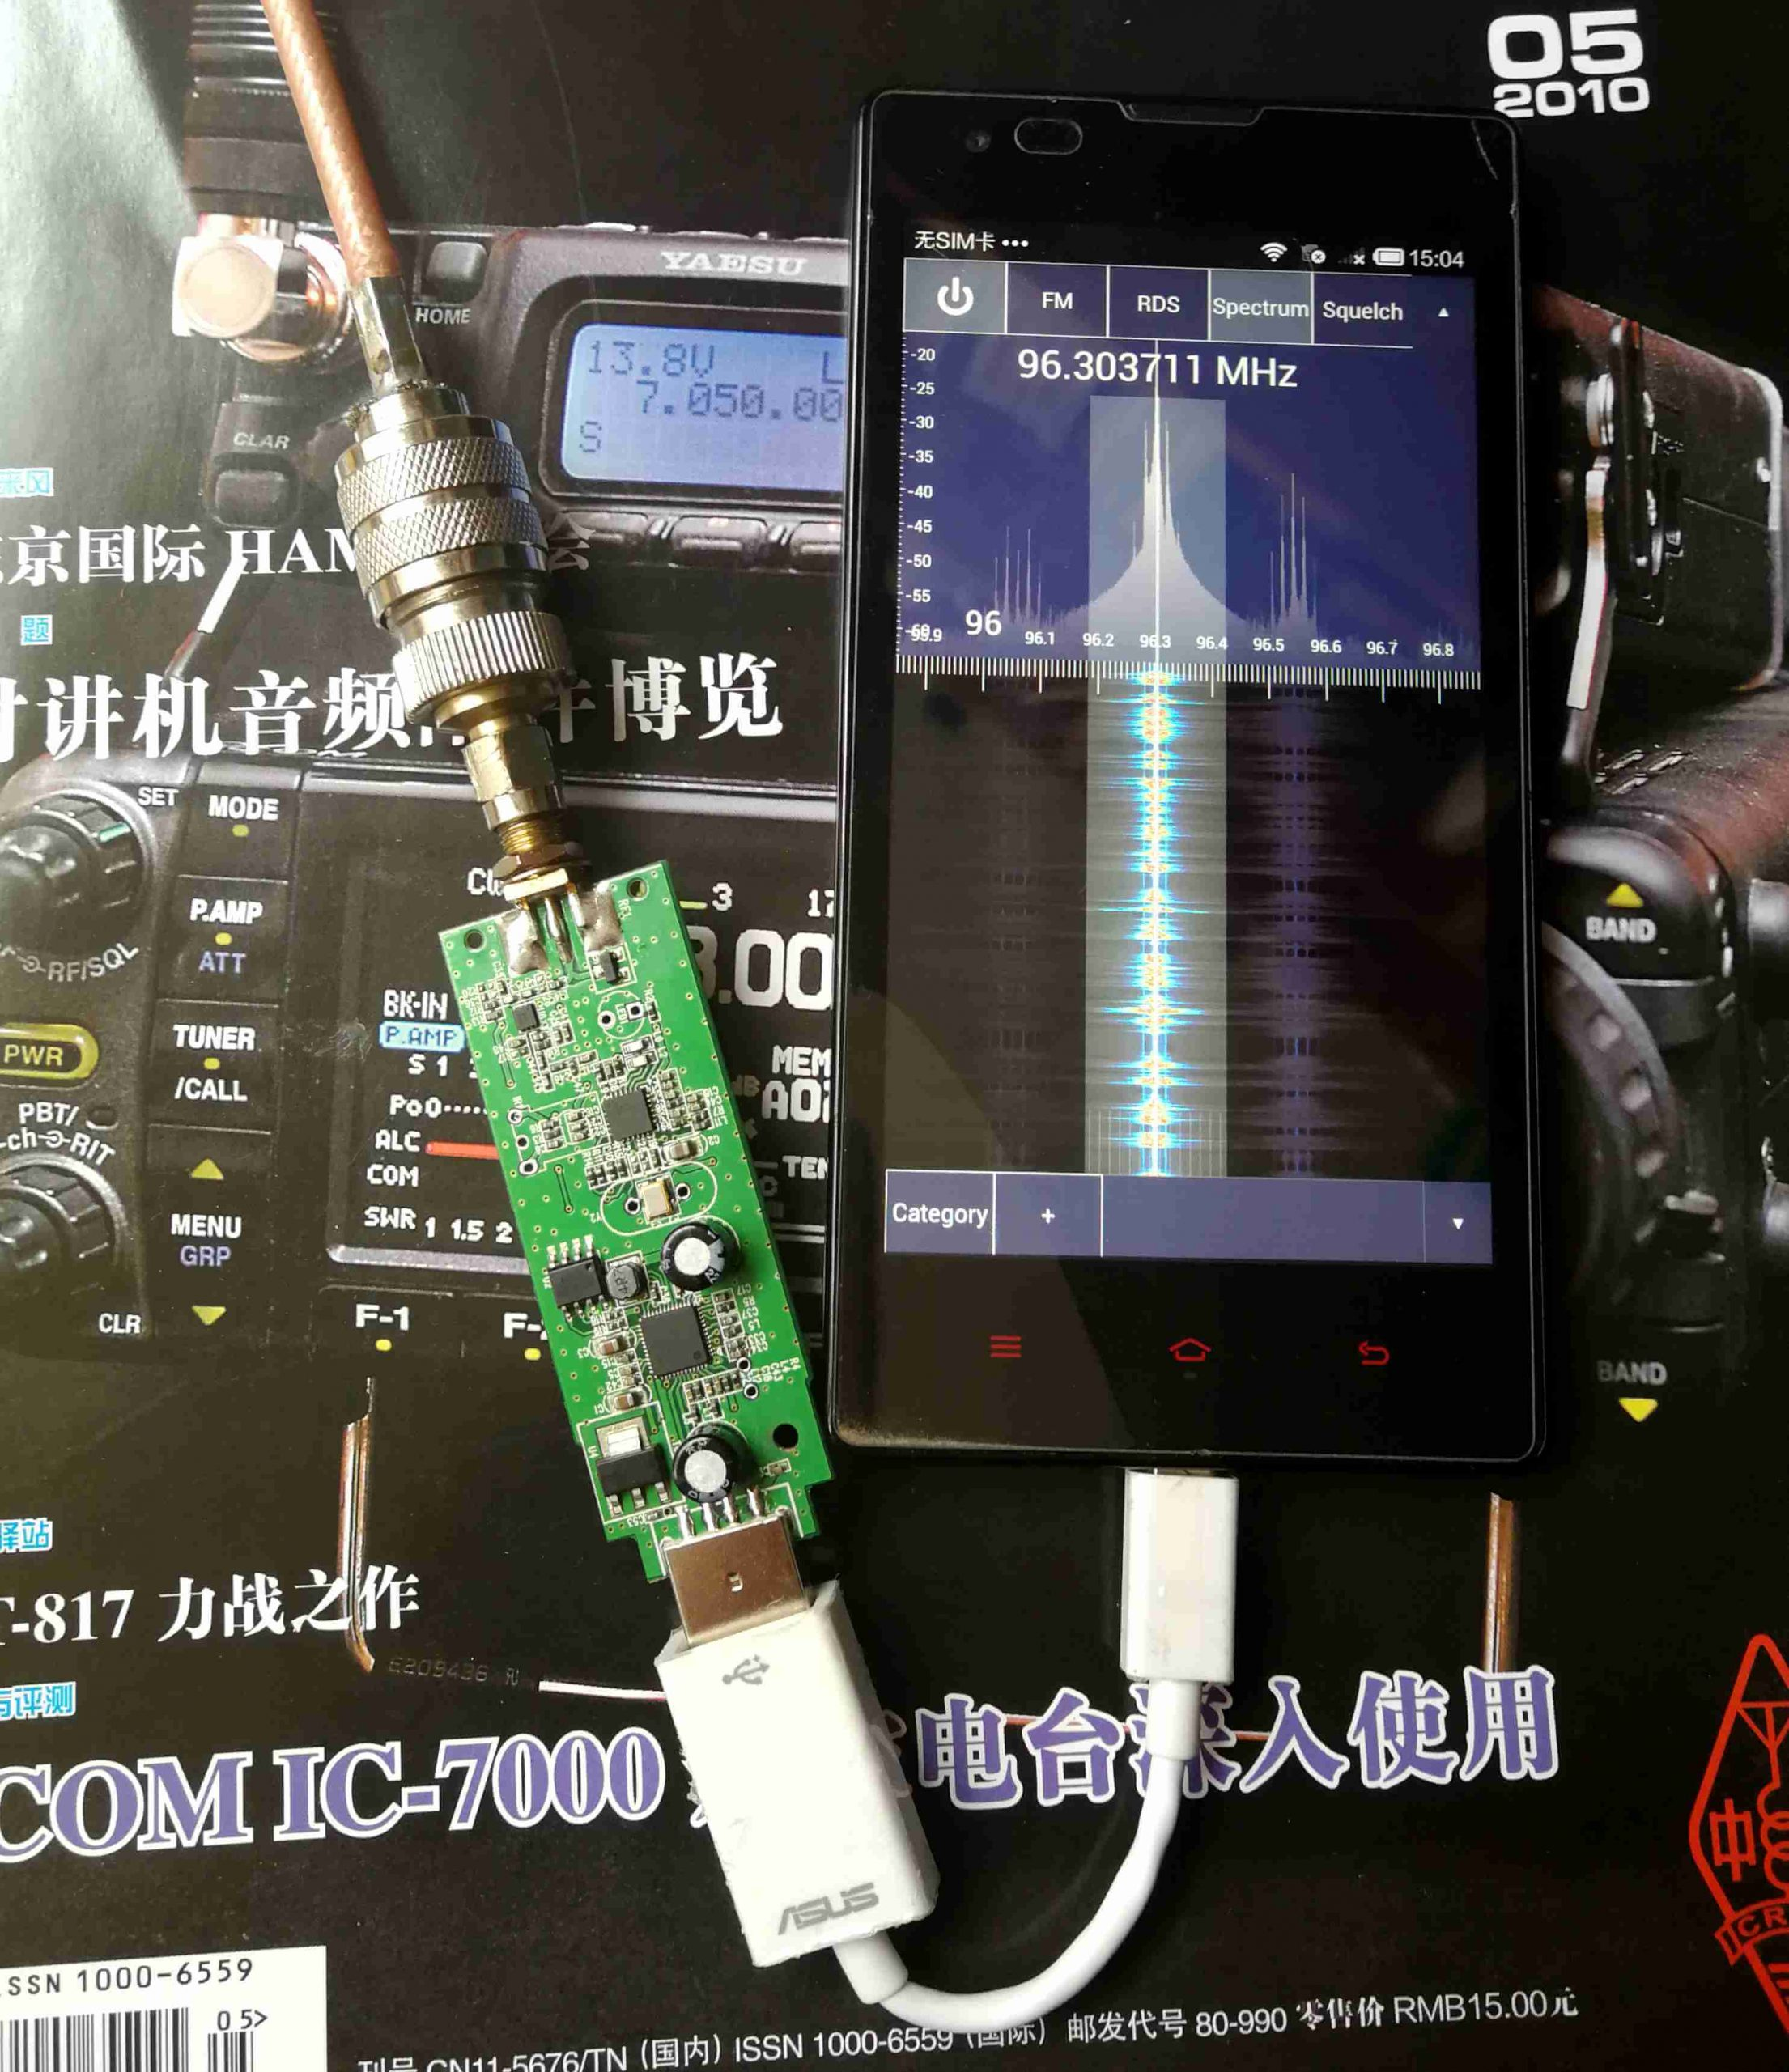 SDR Touch-一款用于Android设备的SDR软件